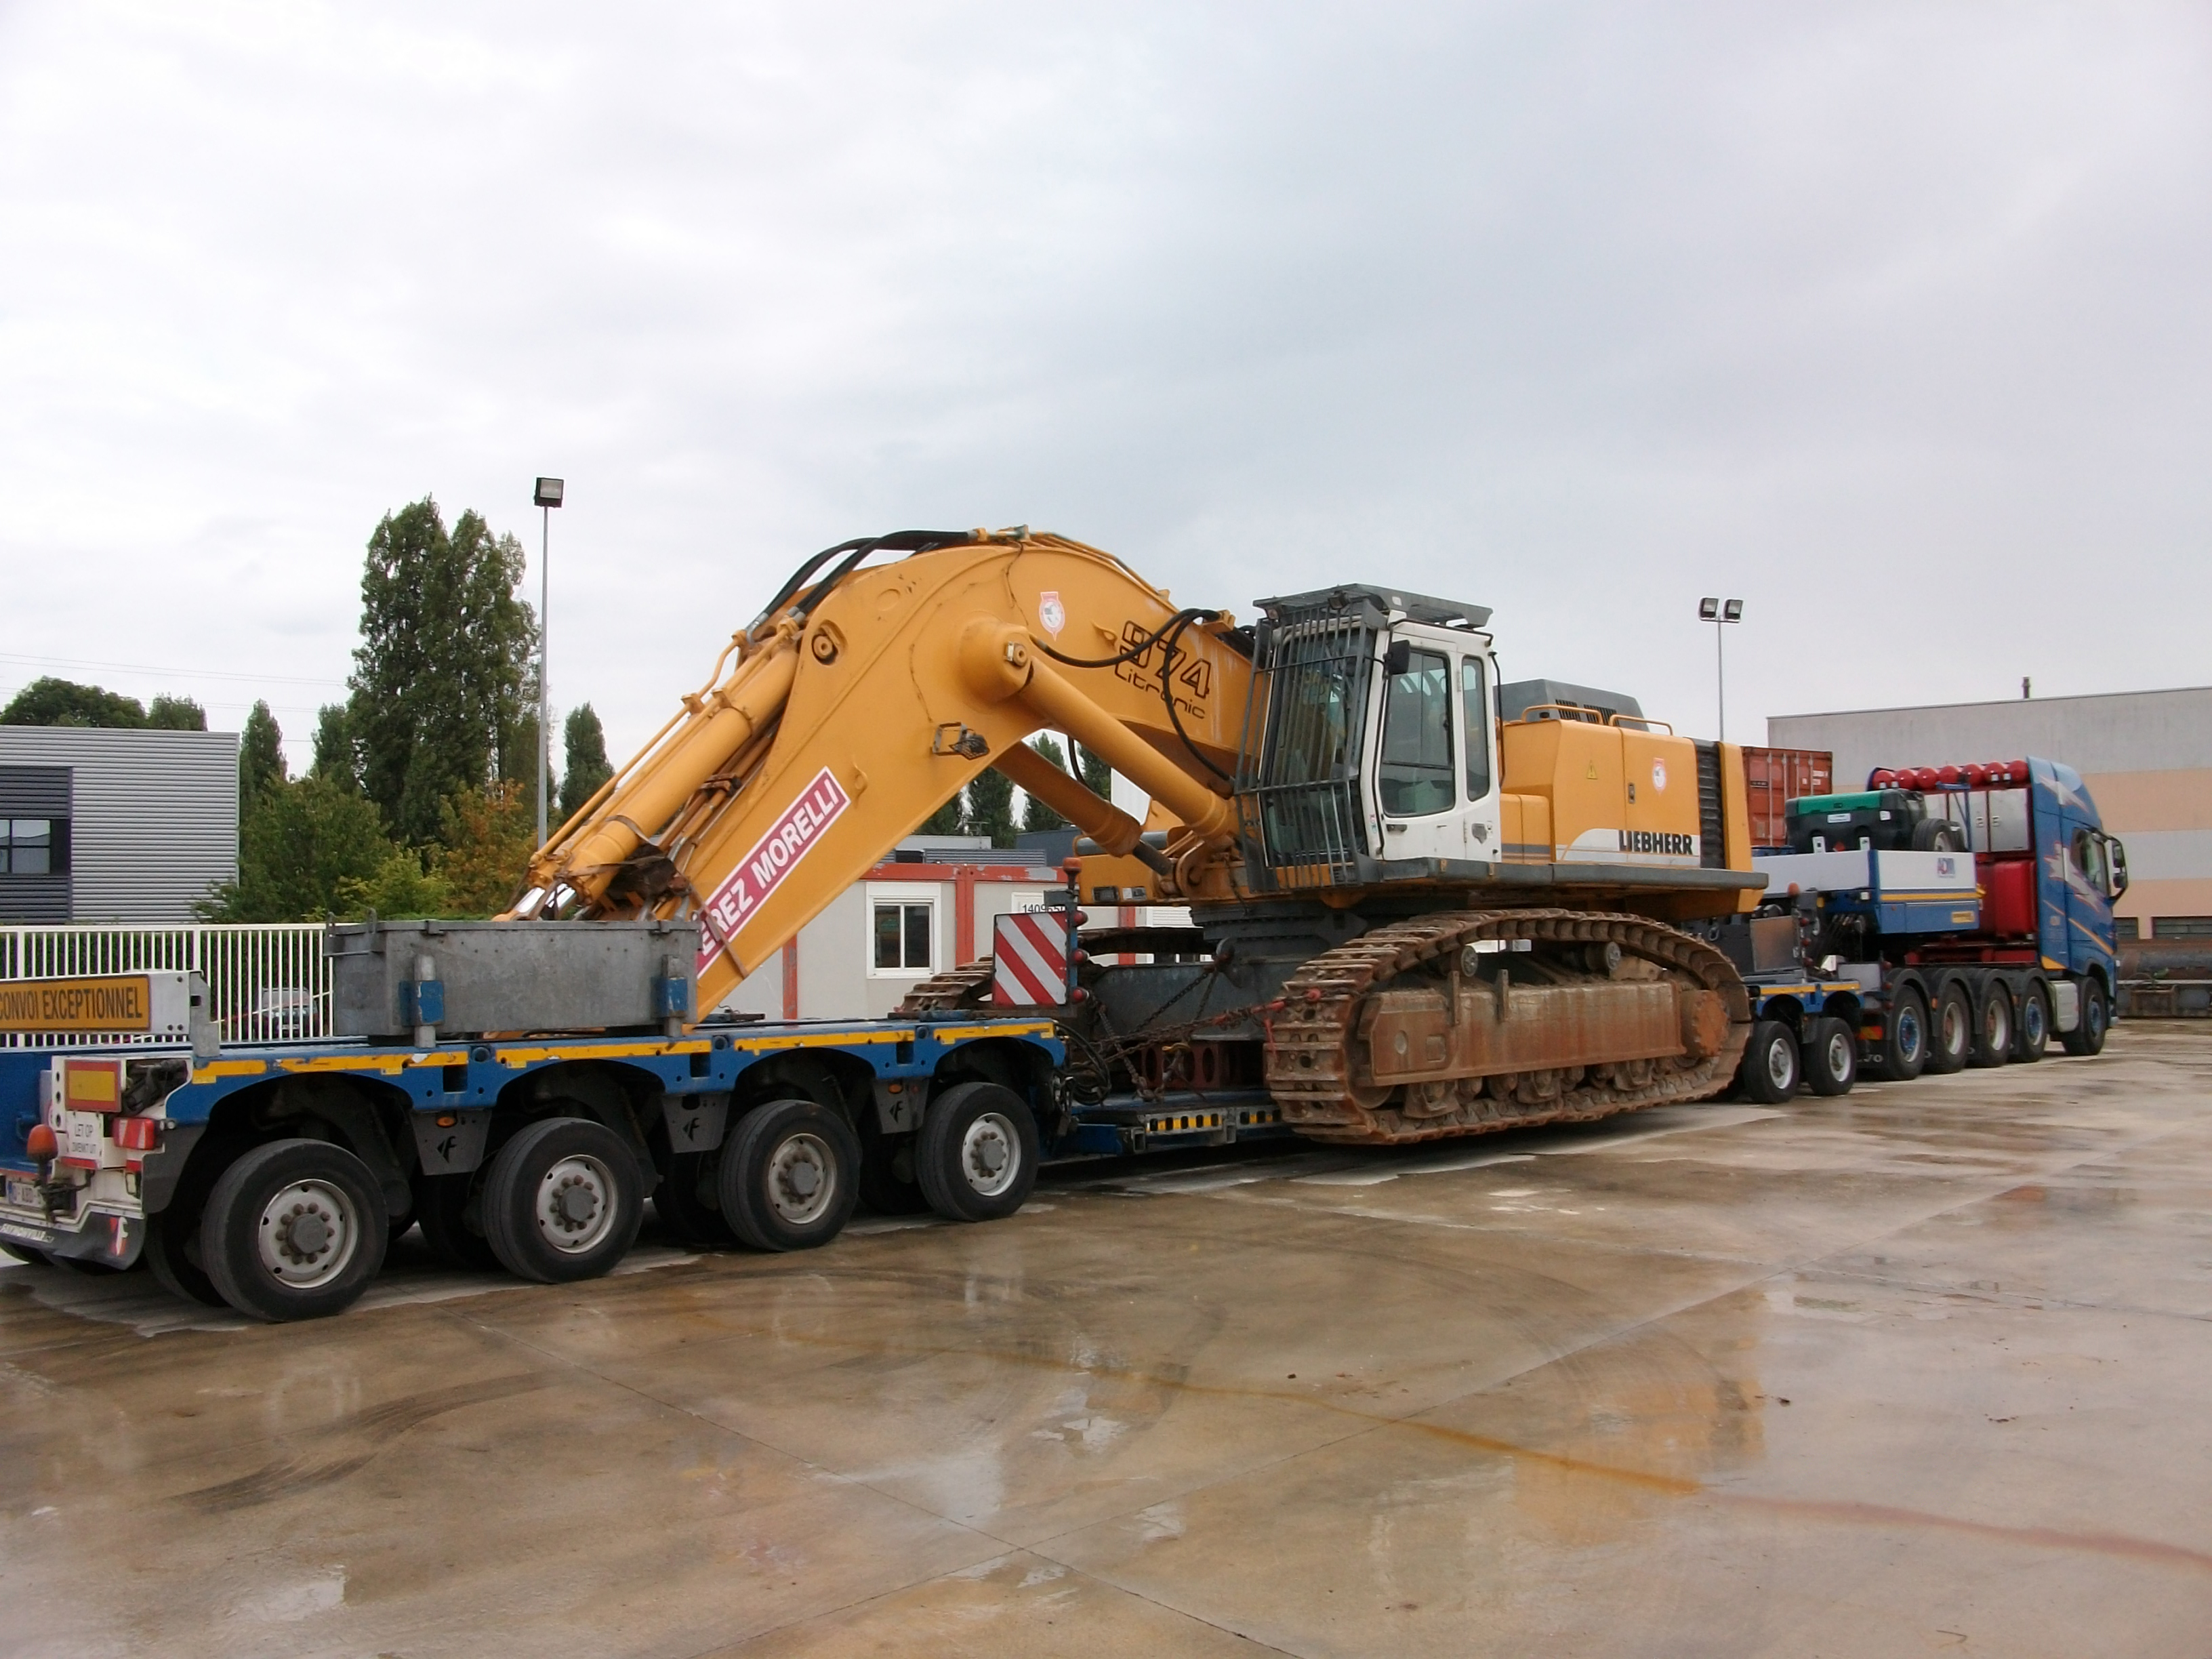 80 ton Tracked Excavator ready to begin the journey to its new owner.jpg